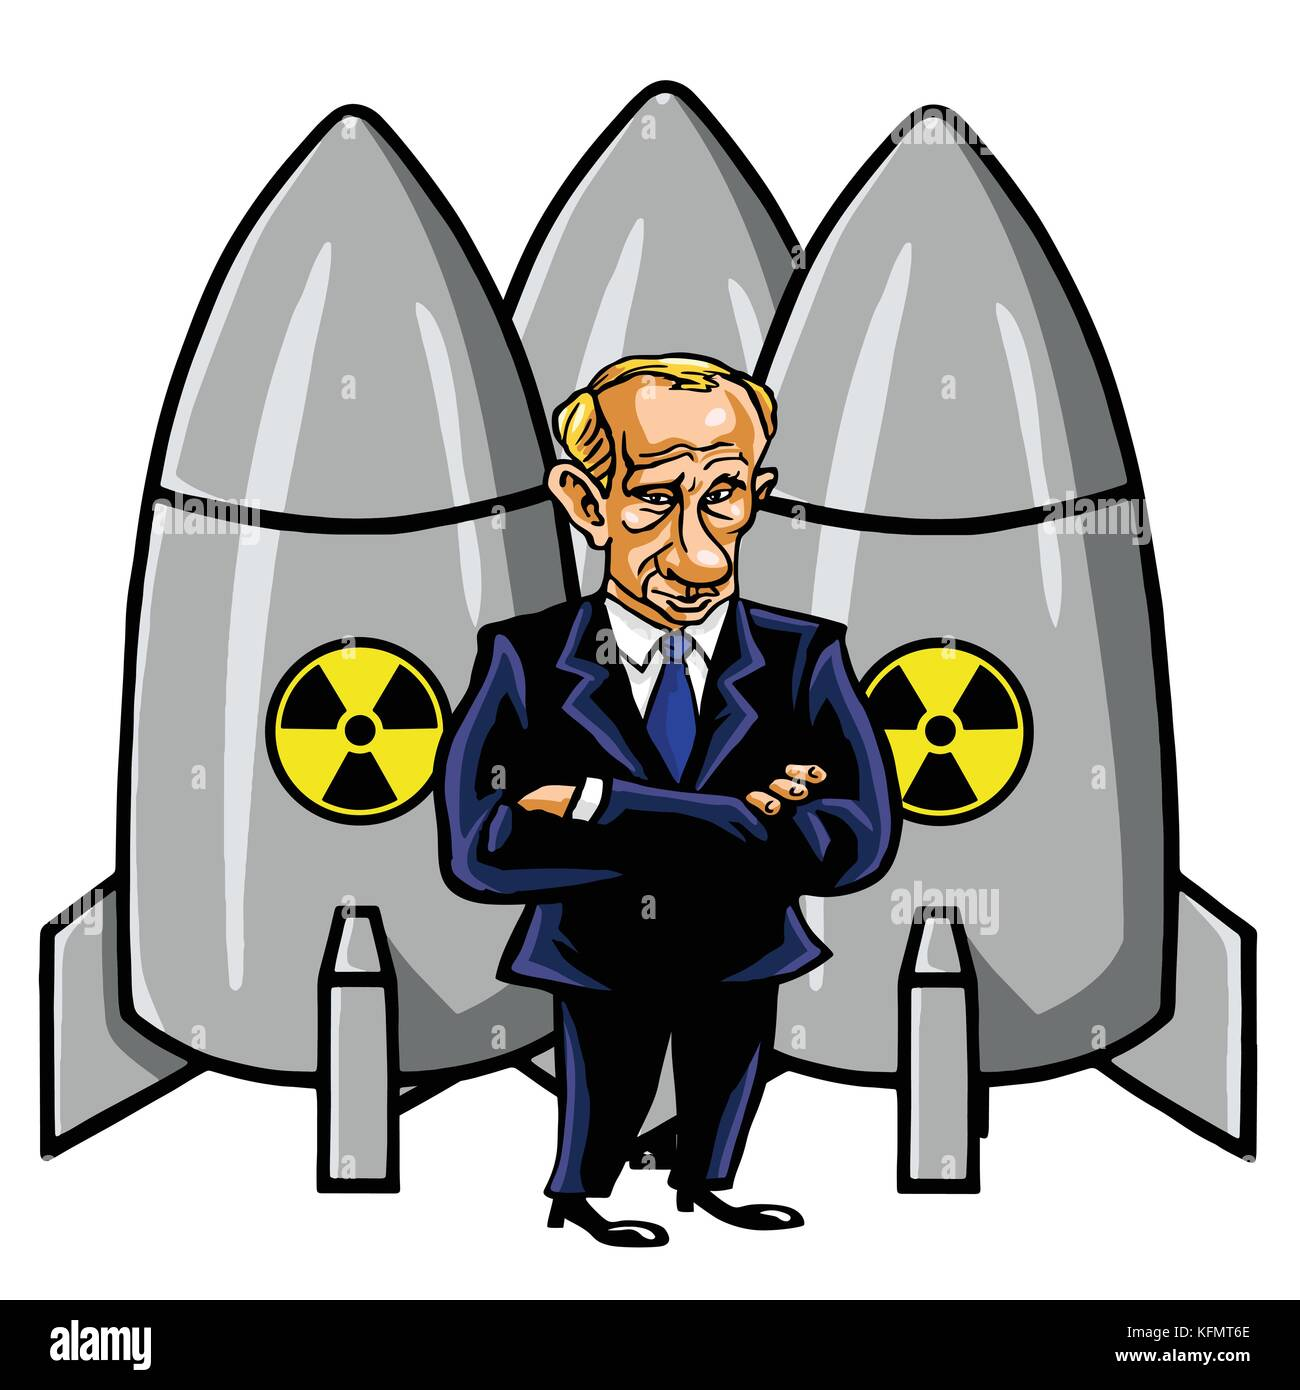 Vladimir Putin Cartoon with Nuclear Missiles. Vector Illustration. October 31, 2017 - Stock Image